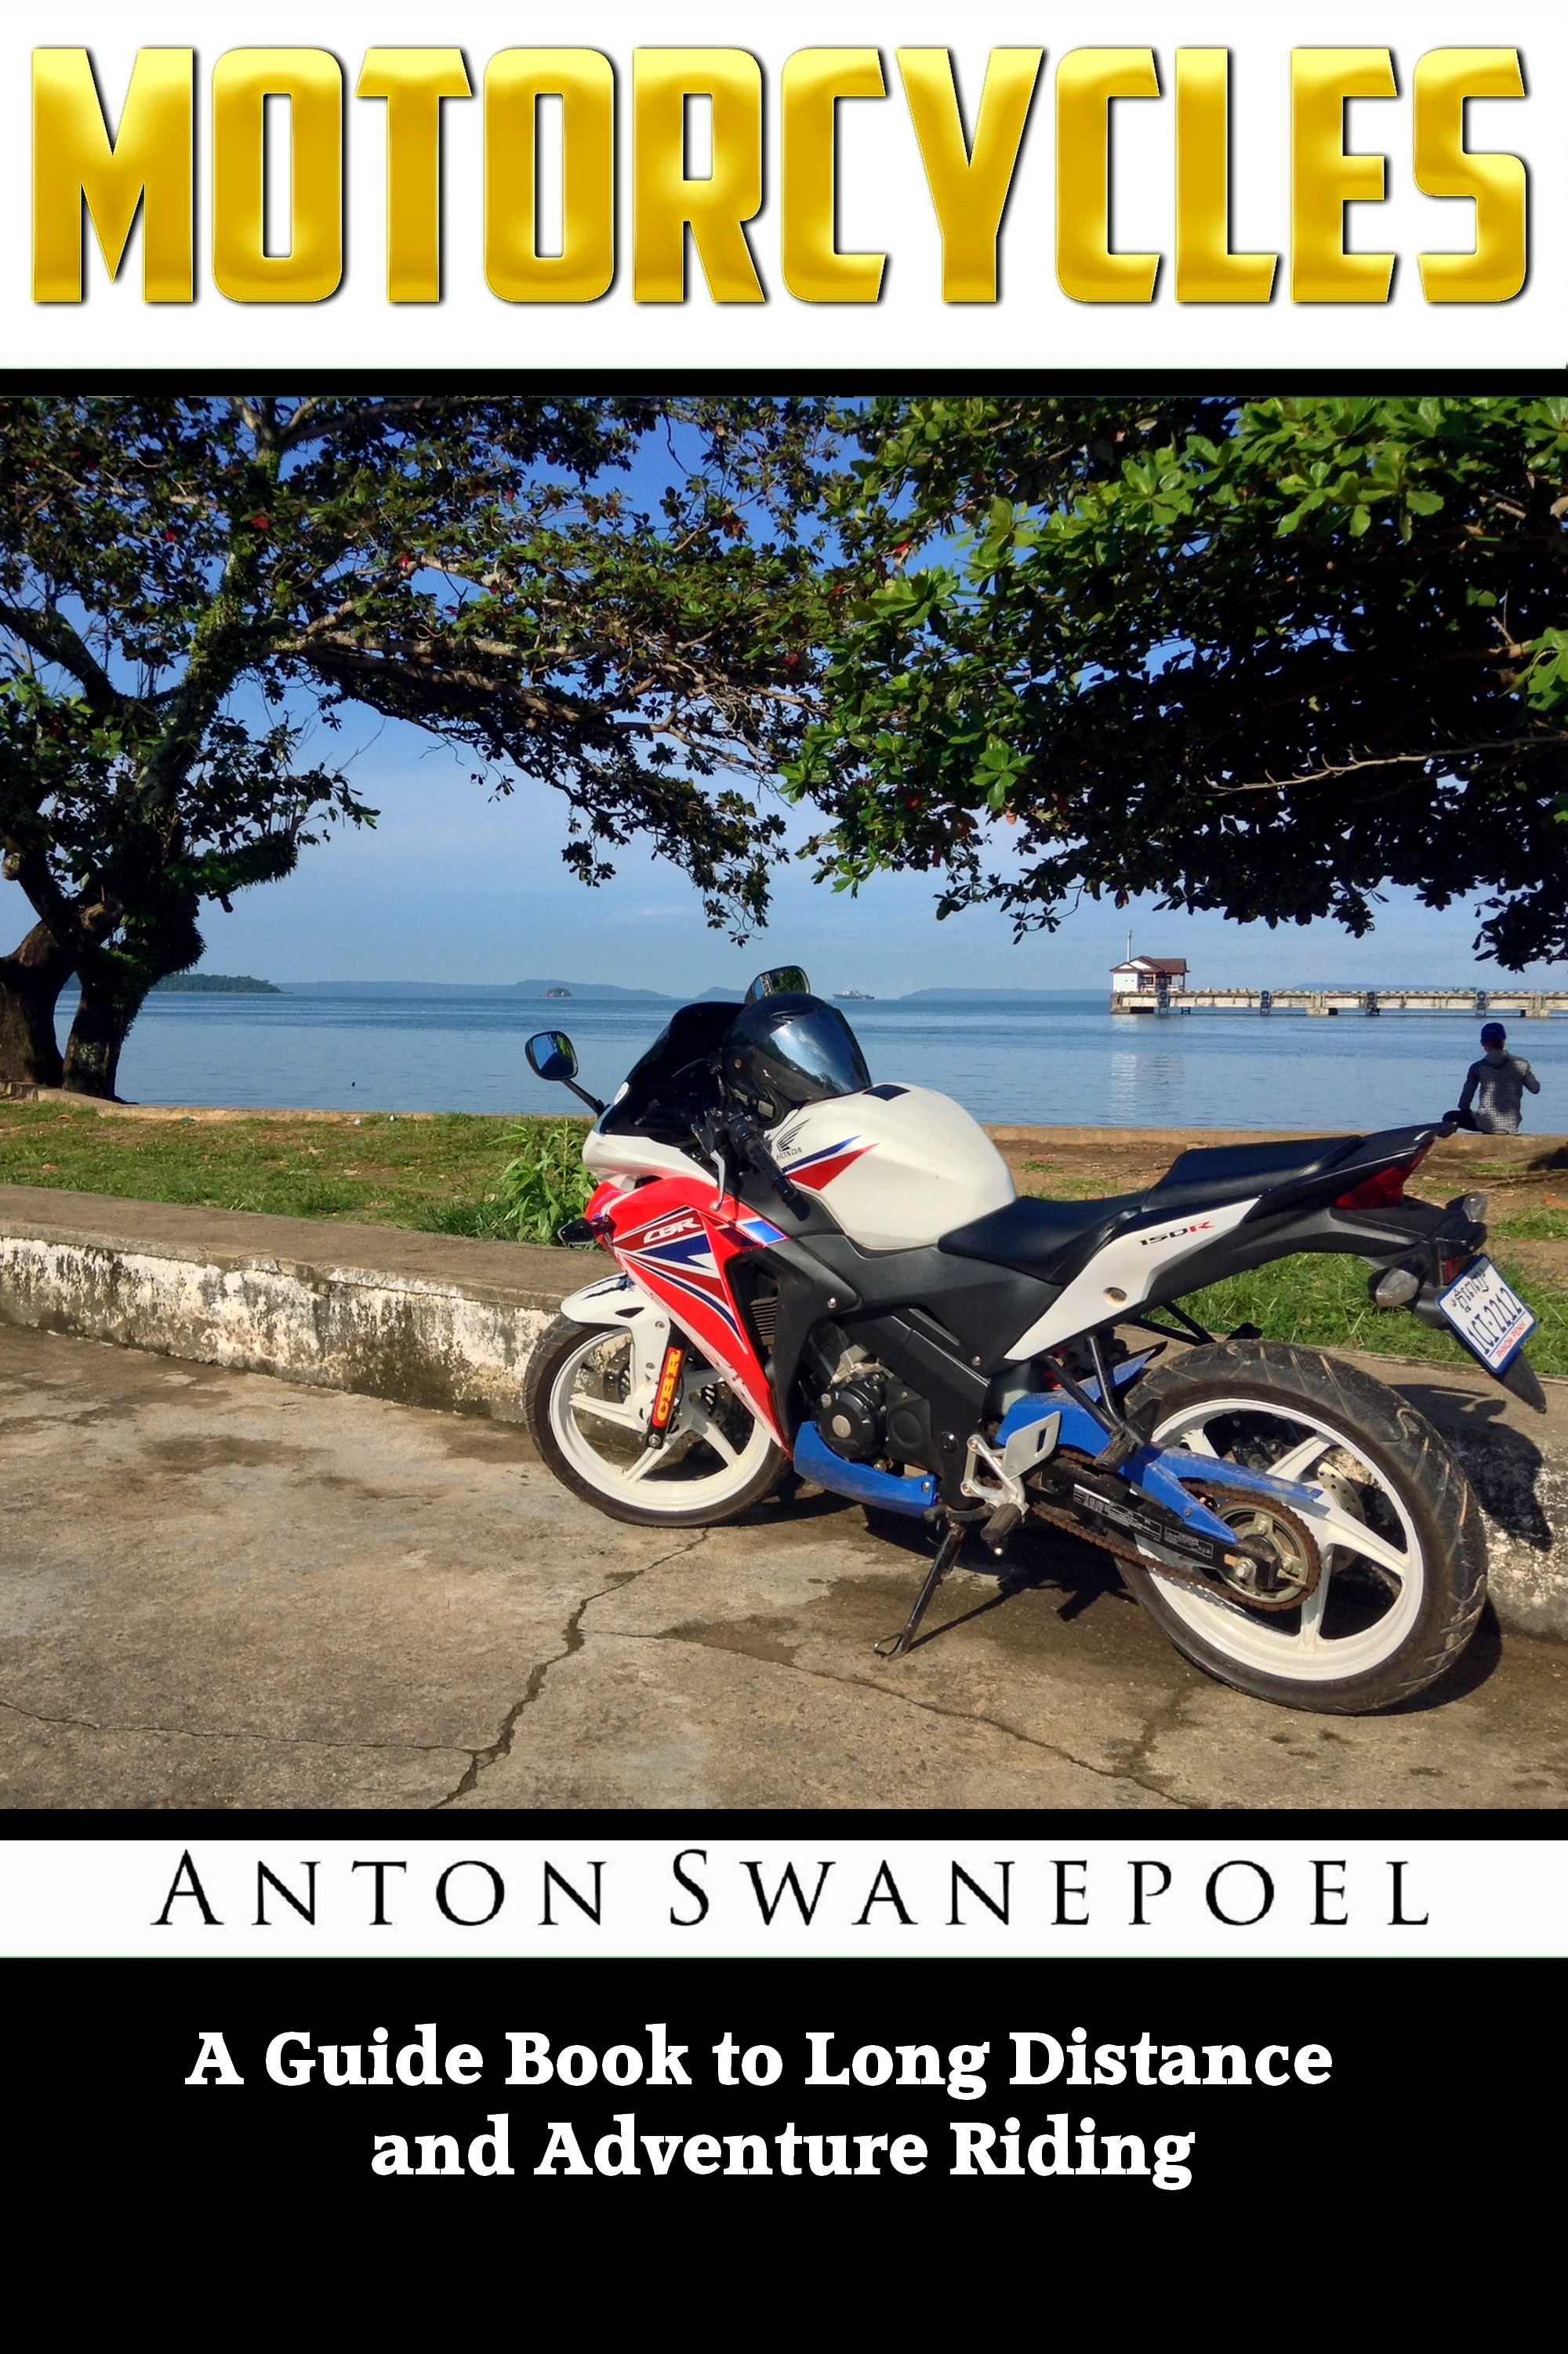 Unique motorcycle tours and vacations with top local guides